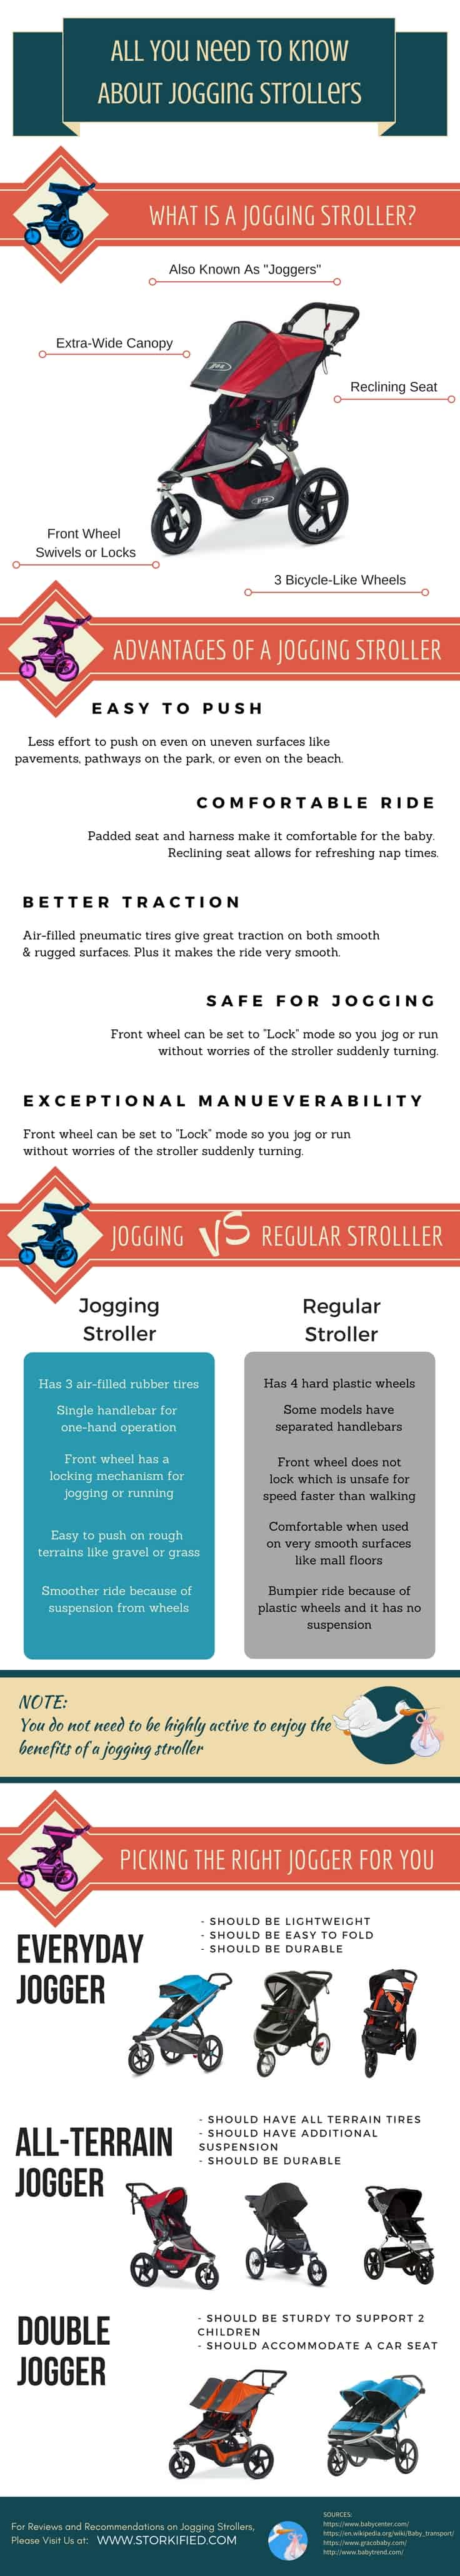 Best Jogging Strollers Infographic